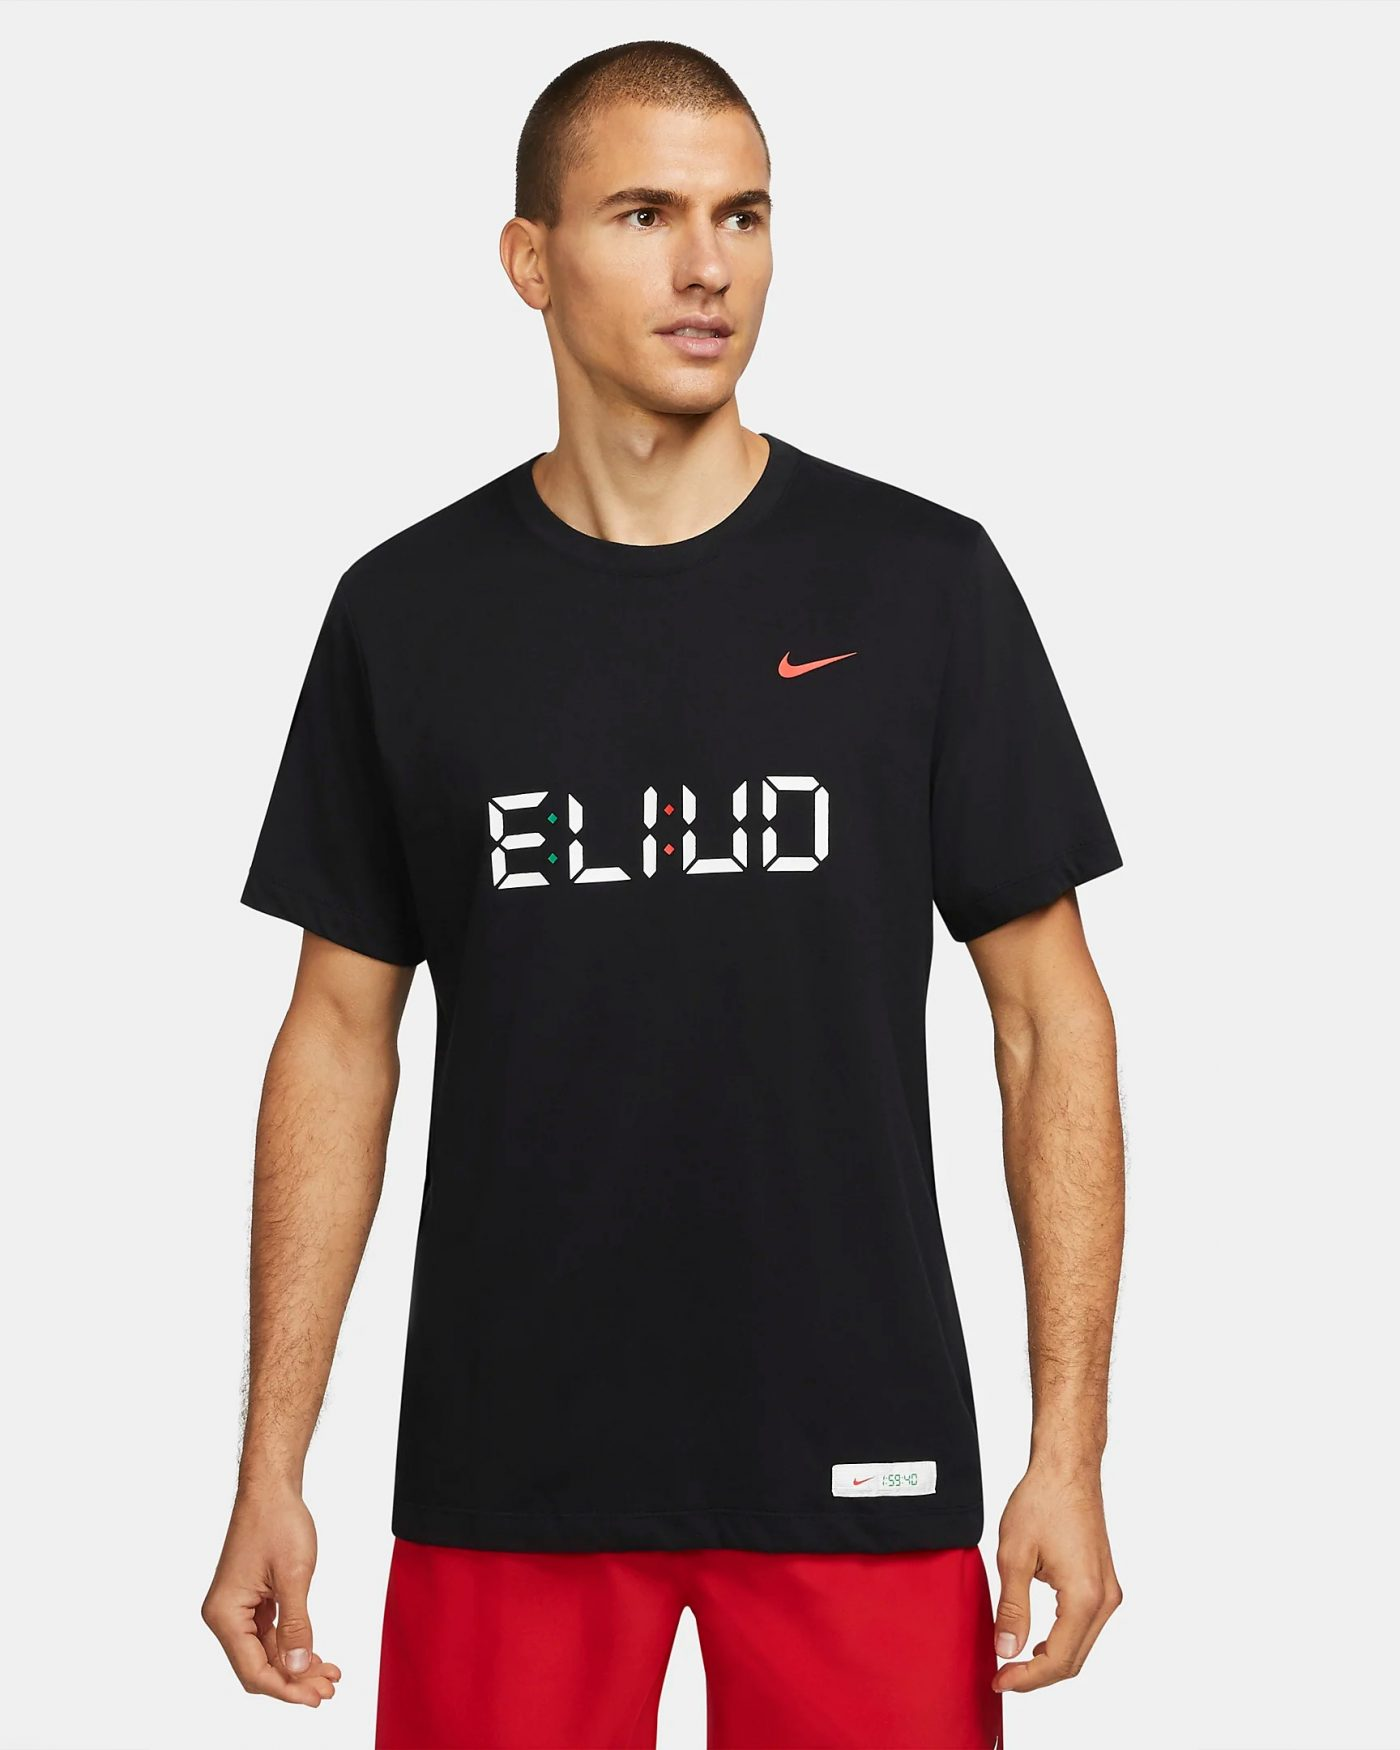 tshirt_collection_capsule_nike_kipchoge_homme